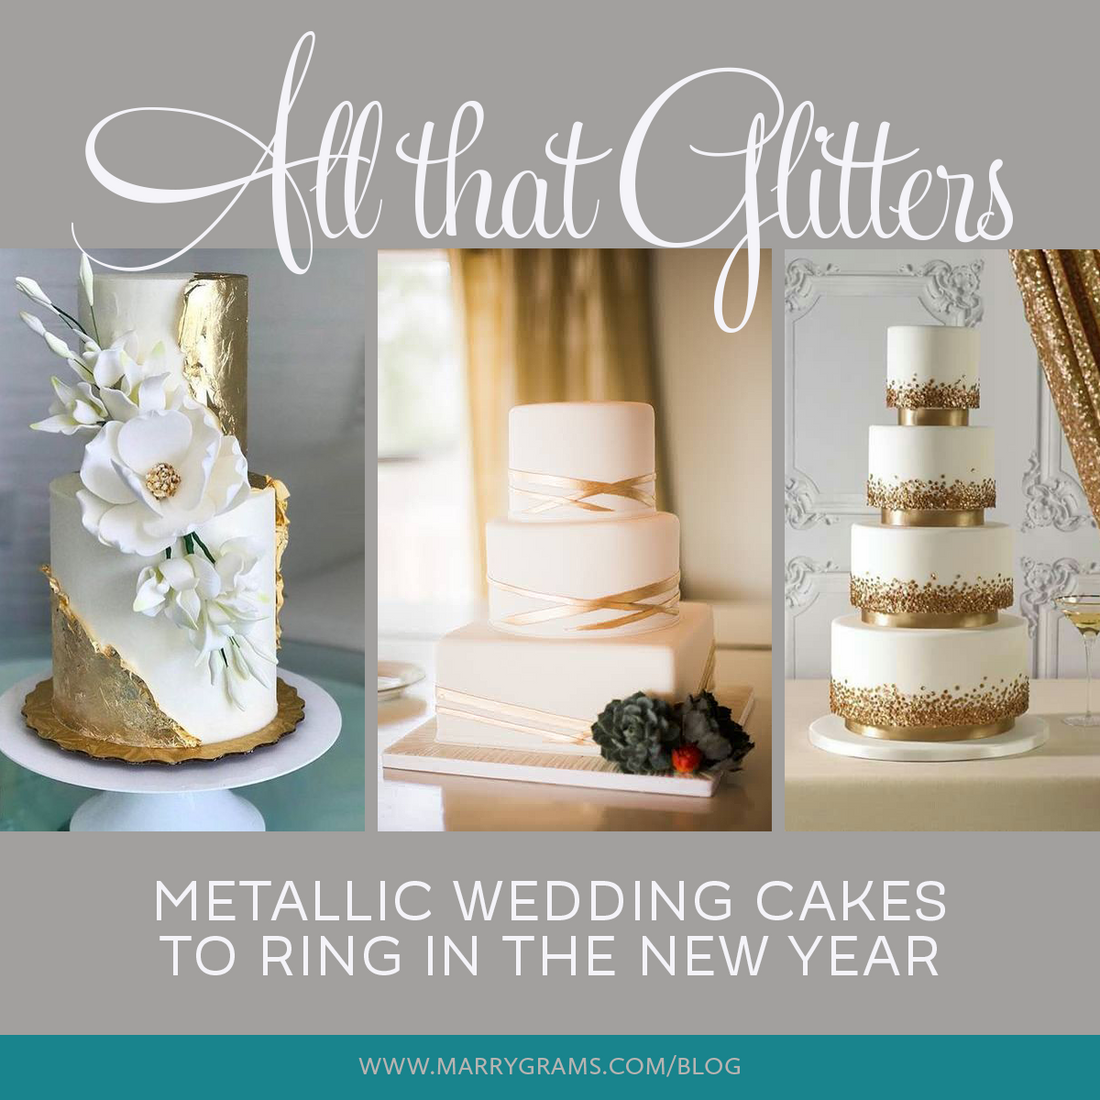 All That Glitters Metallic Wedding Cakes To Ring In The New Year